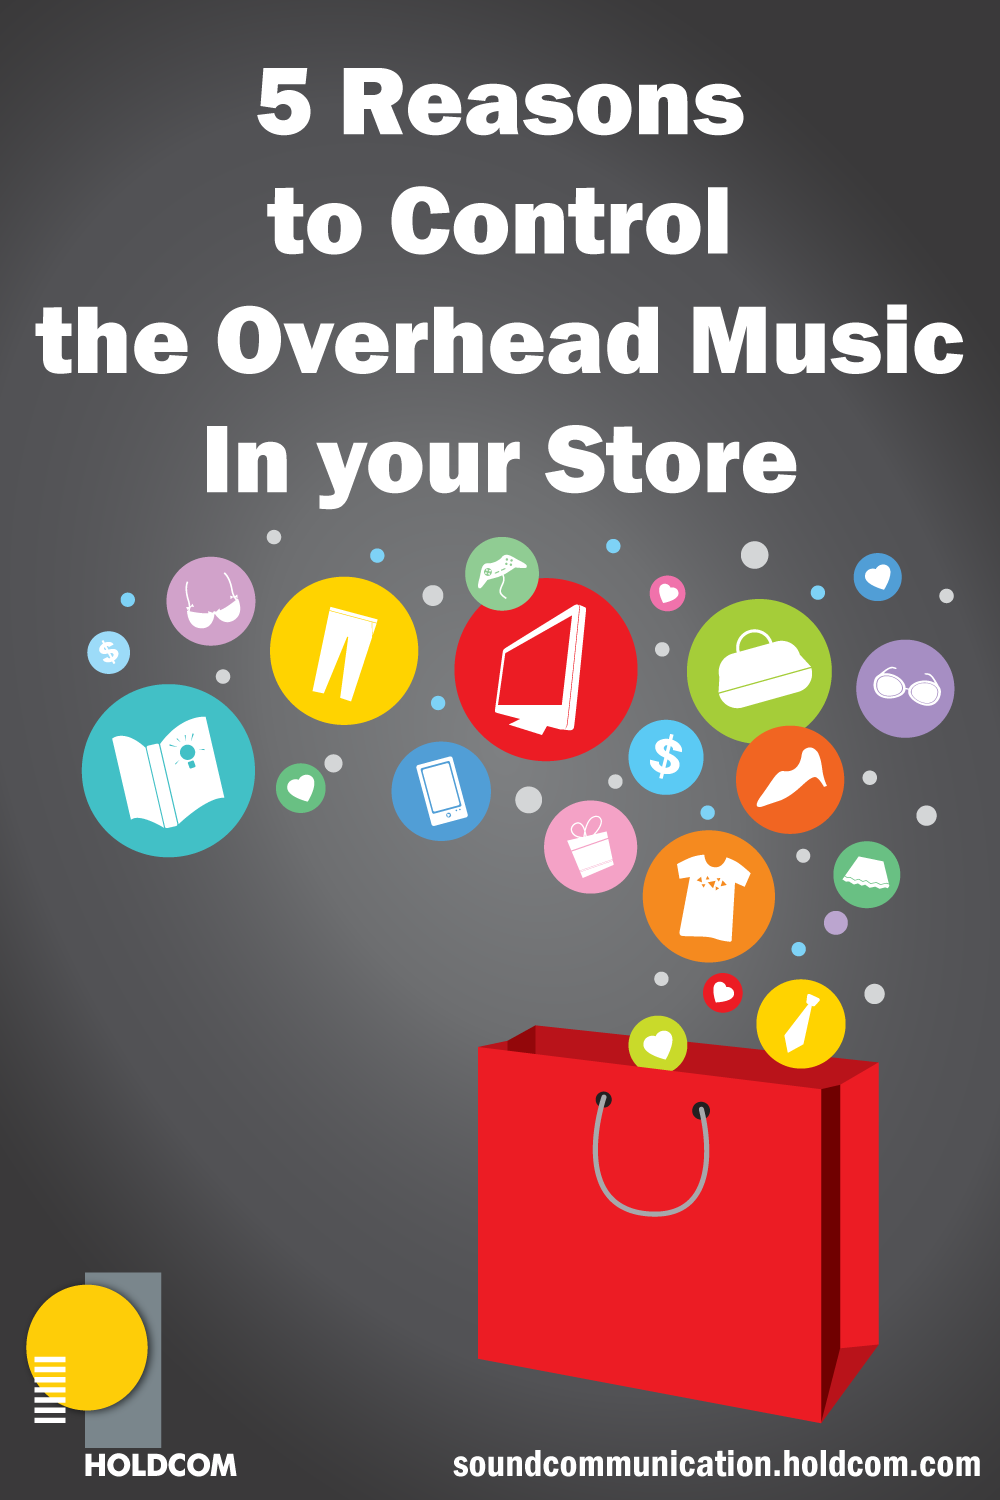 5 reasons to control overhead music